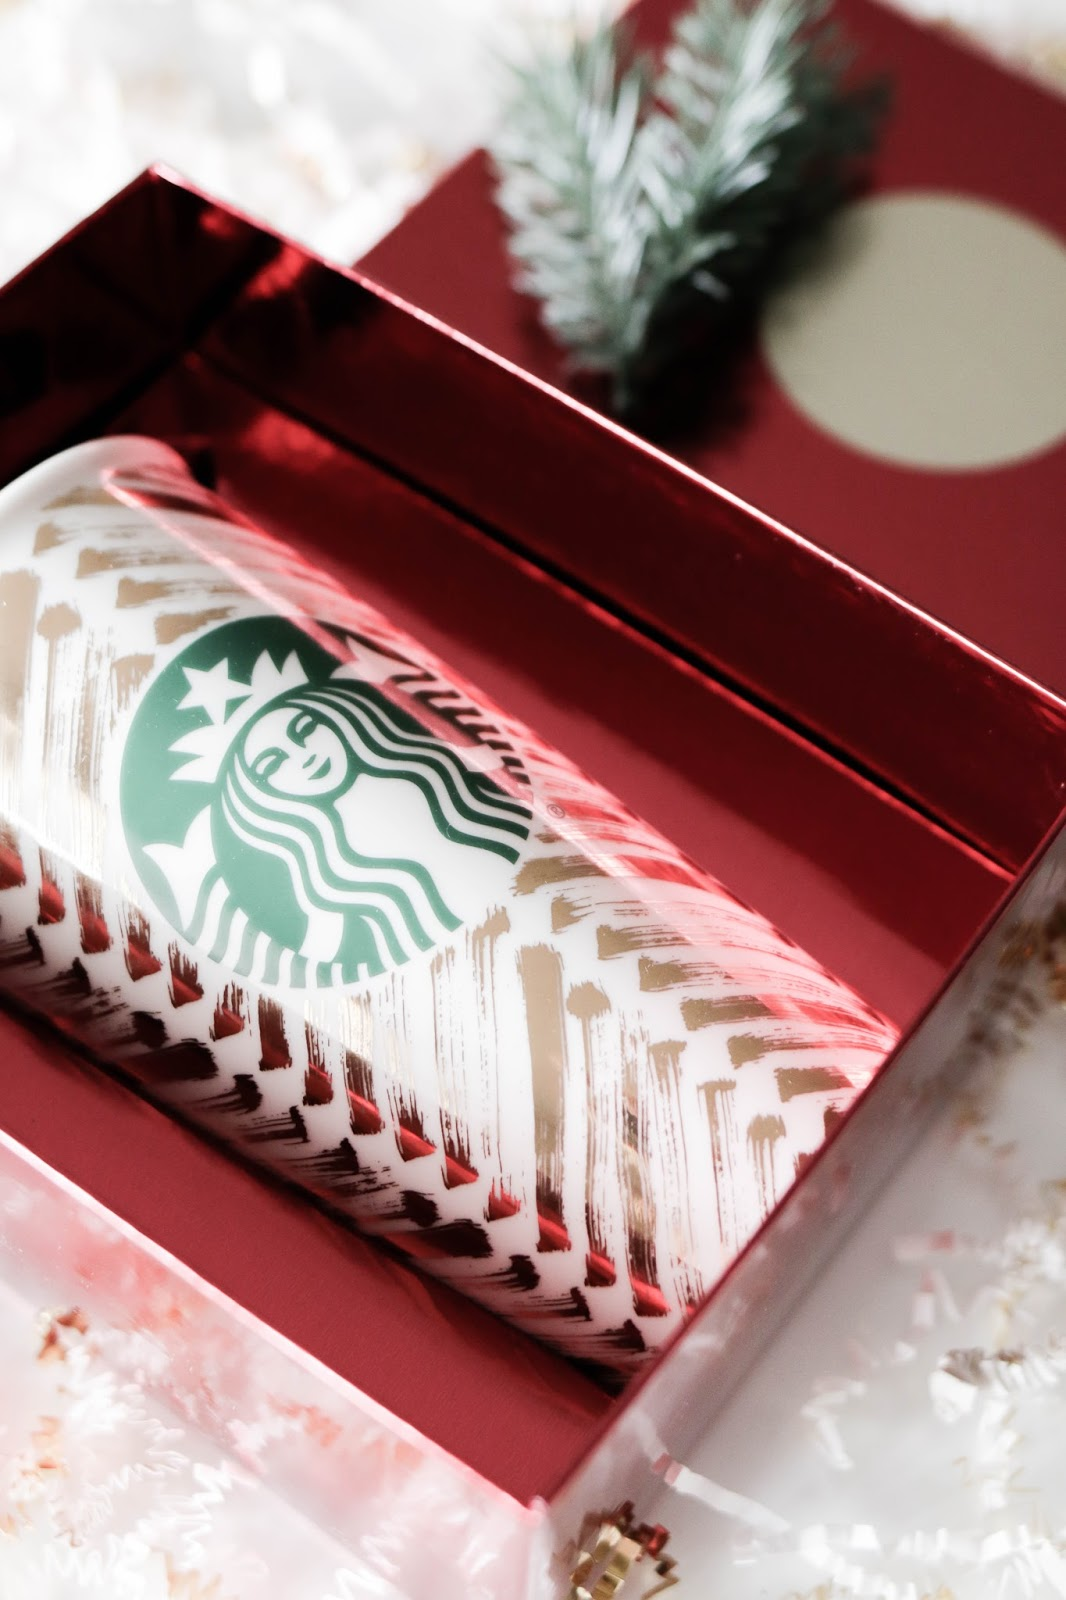 easy, last minute, gifts, gift ideas, starbucks, holidays, coffee, coffee lovers, gold mug, travel mug, starbucks ornament, thank you cards, stationary, holiday blend, hot cocoa, instant, latte, blog, lifestyle, fashion, blogger, dc